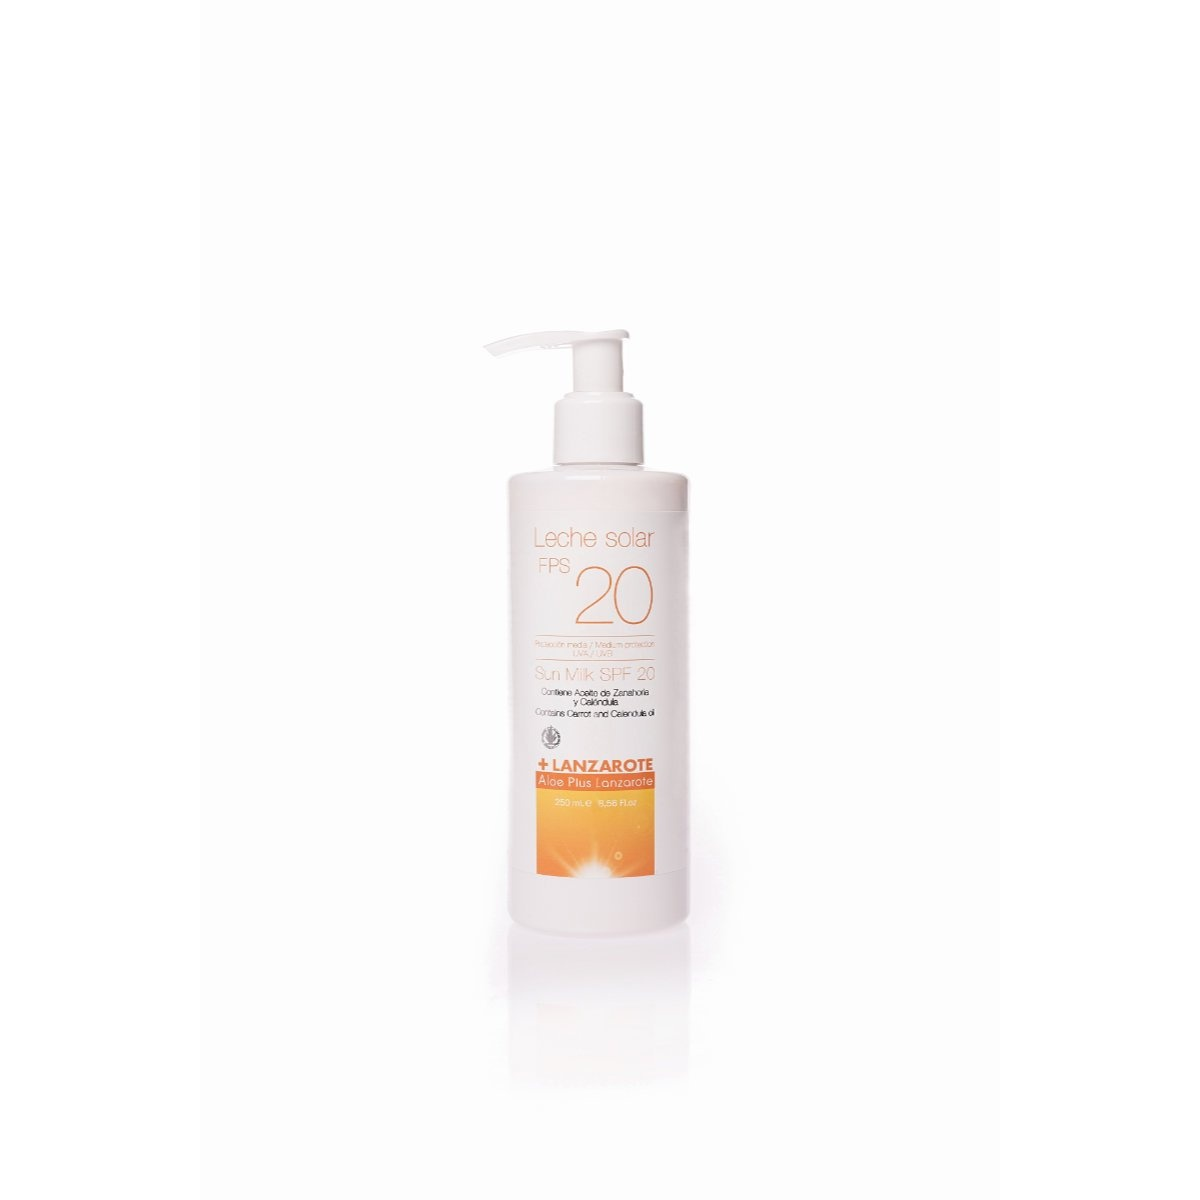 ALOE VERA SUNSCREEN SPF20 250ml